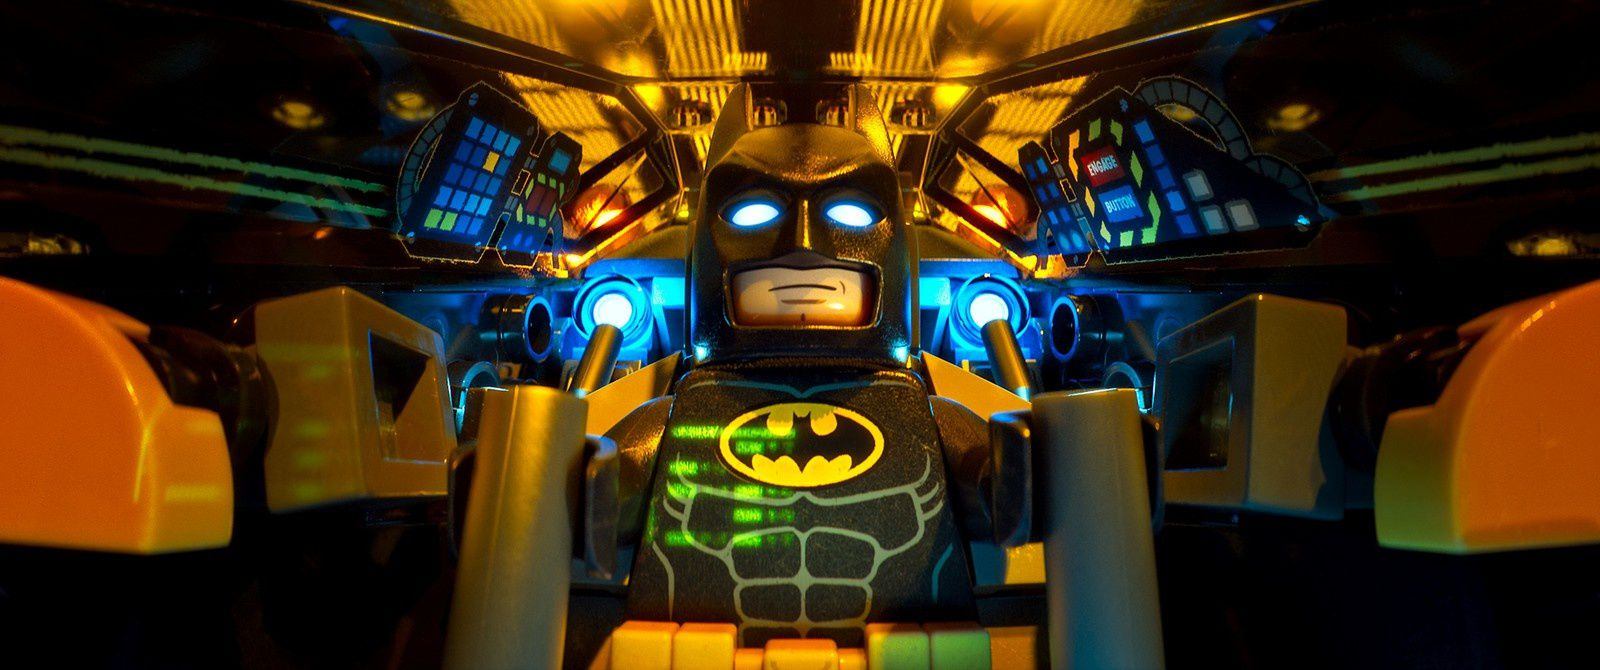 #cinema: LEGO® BATMAN, LE FILM - 200 M$ DE RECETTES AU BOX-OFFICE MONDIAL